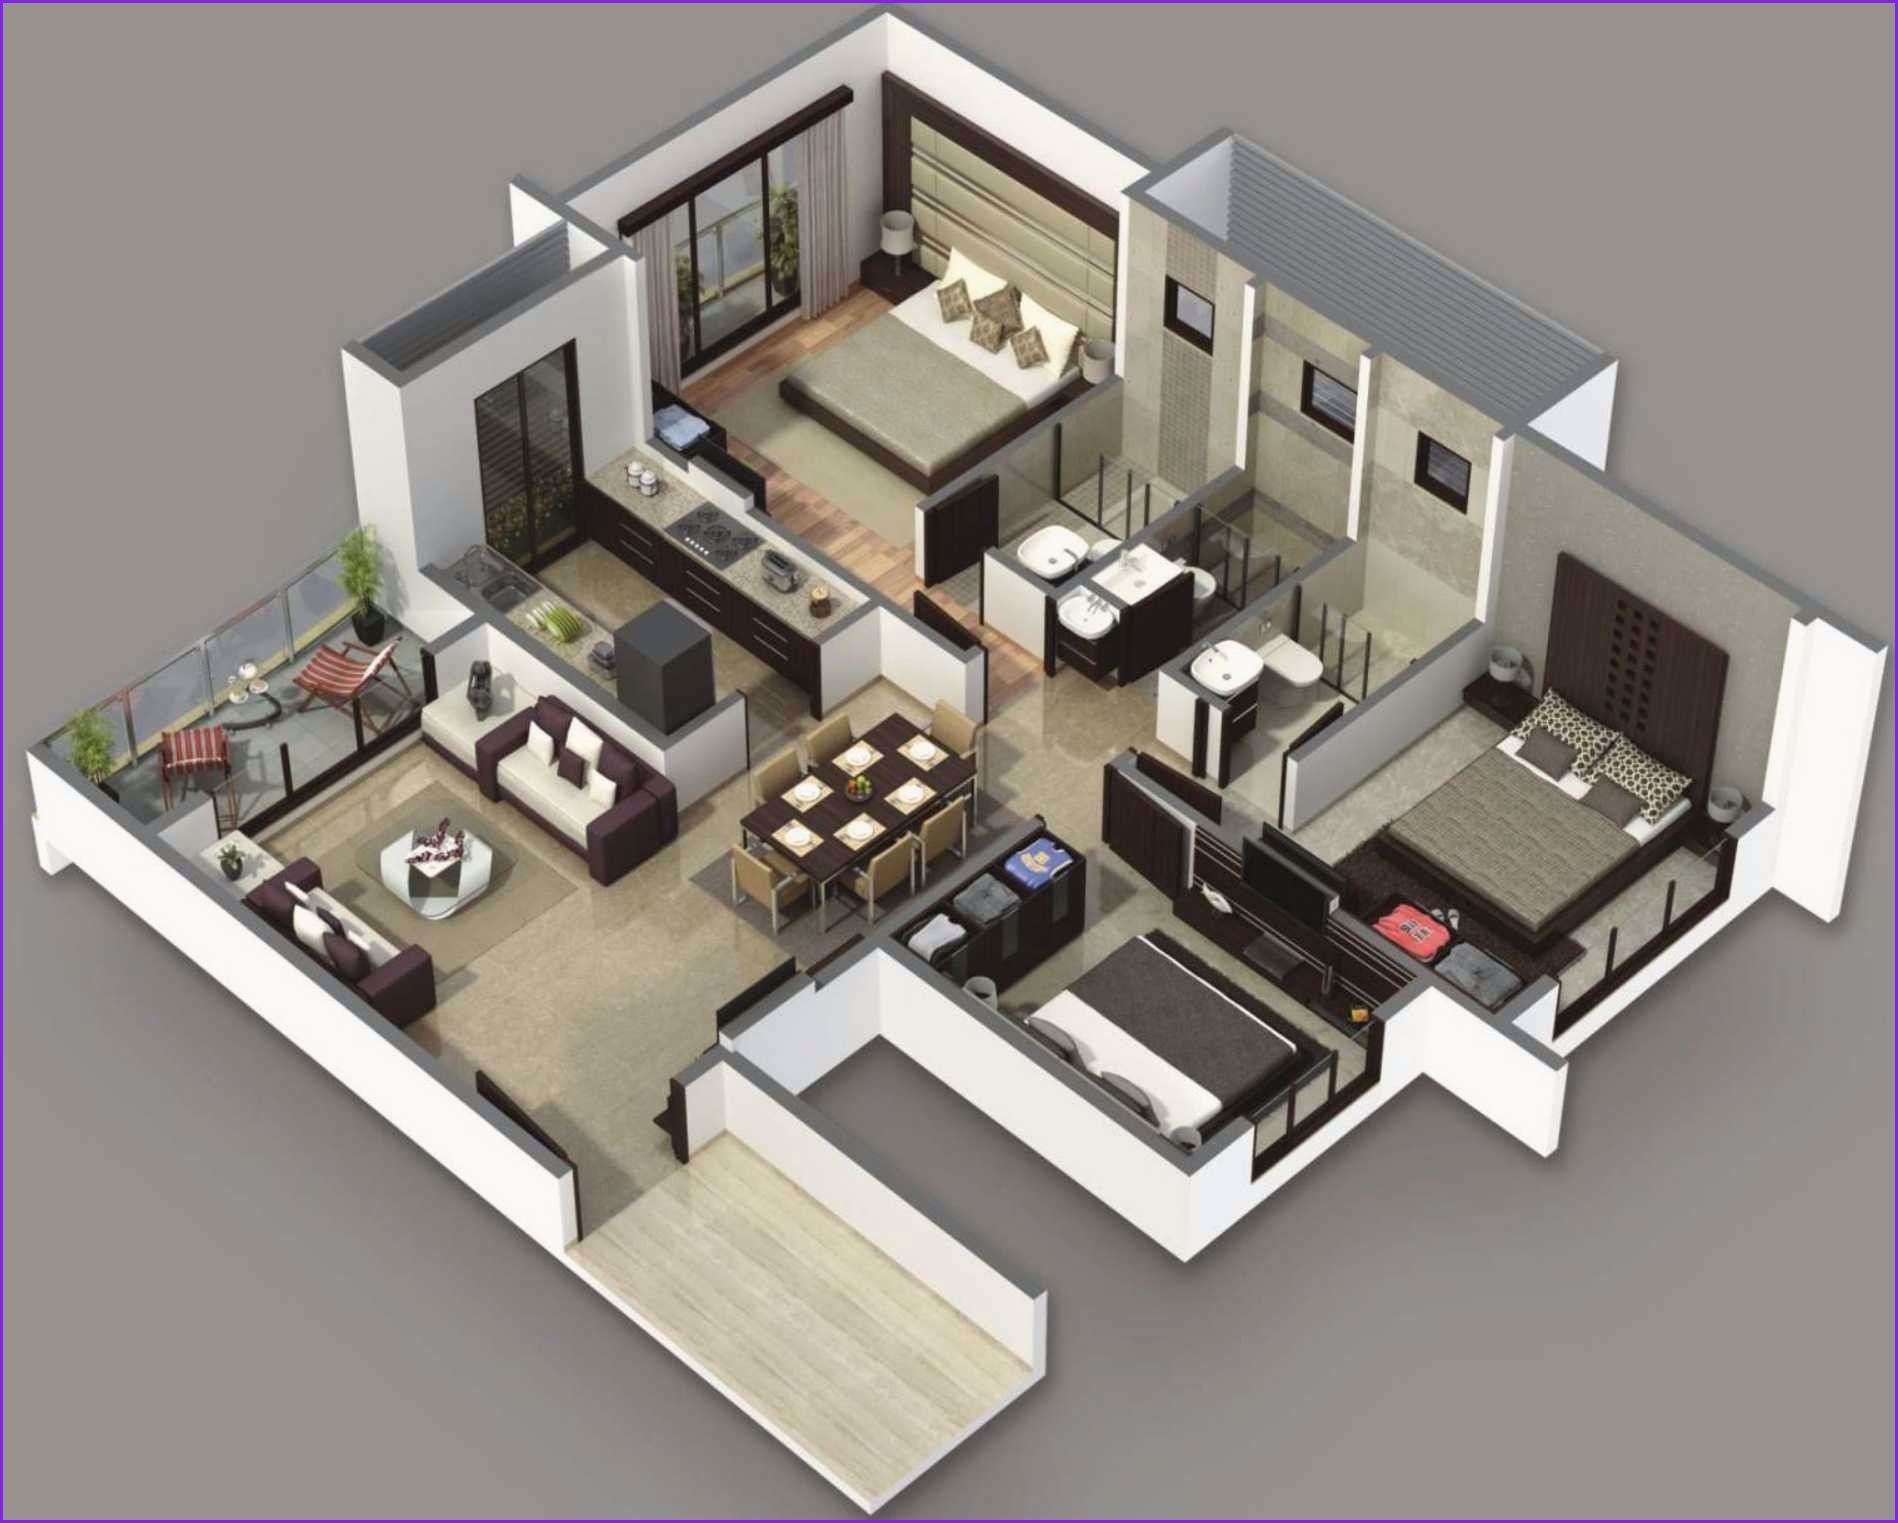 Awesome 2 Bedroom House Plans Under 1500 Sq Ft 2 Bedroom House Plans Under 1500 Sq Ft  Awesome 2 Bedroom House Plans Under 1500 Sq Ft  1500 Sq Ft Ranch House Plans with G...